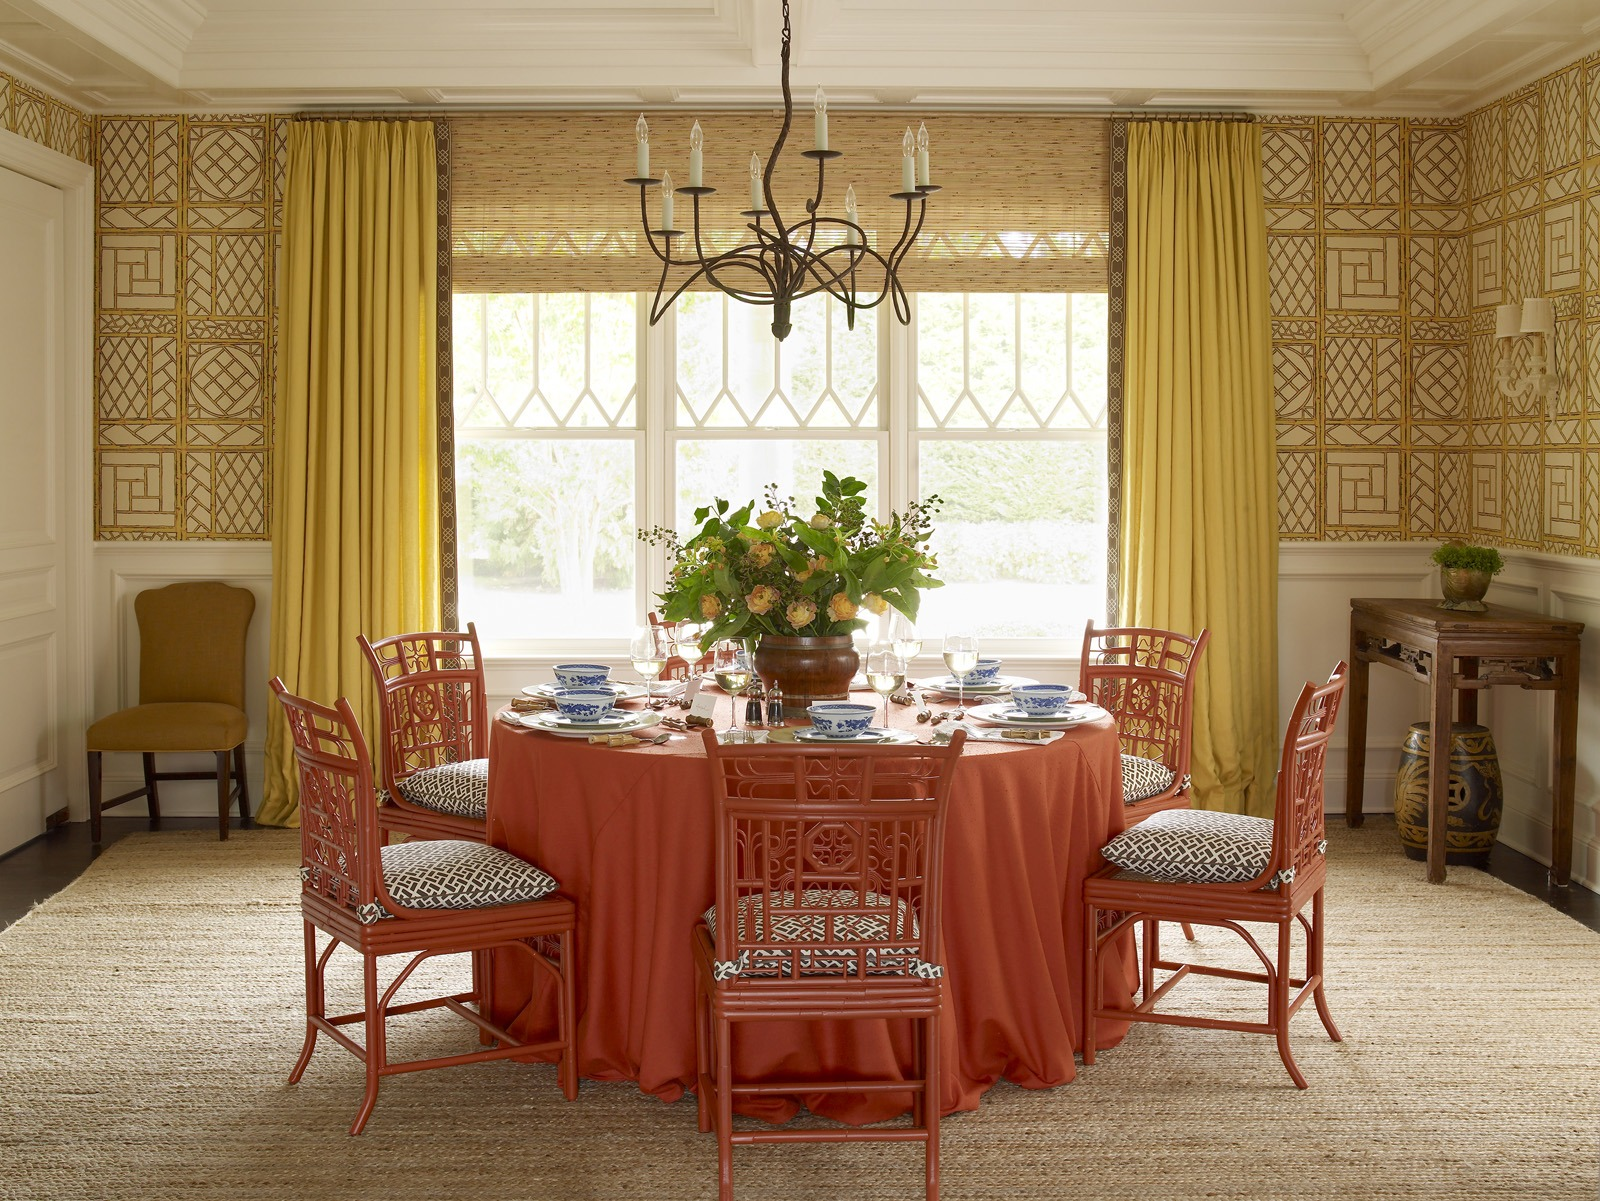 Meg Braff Designs Southampton home dining room